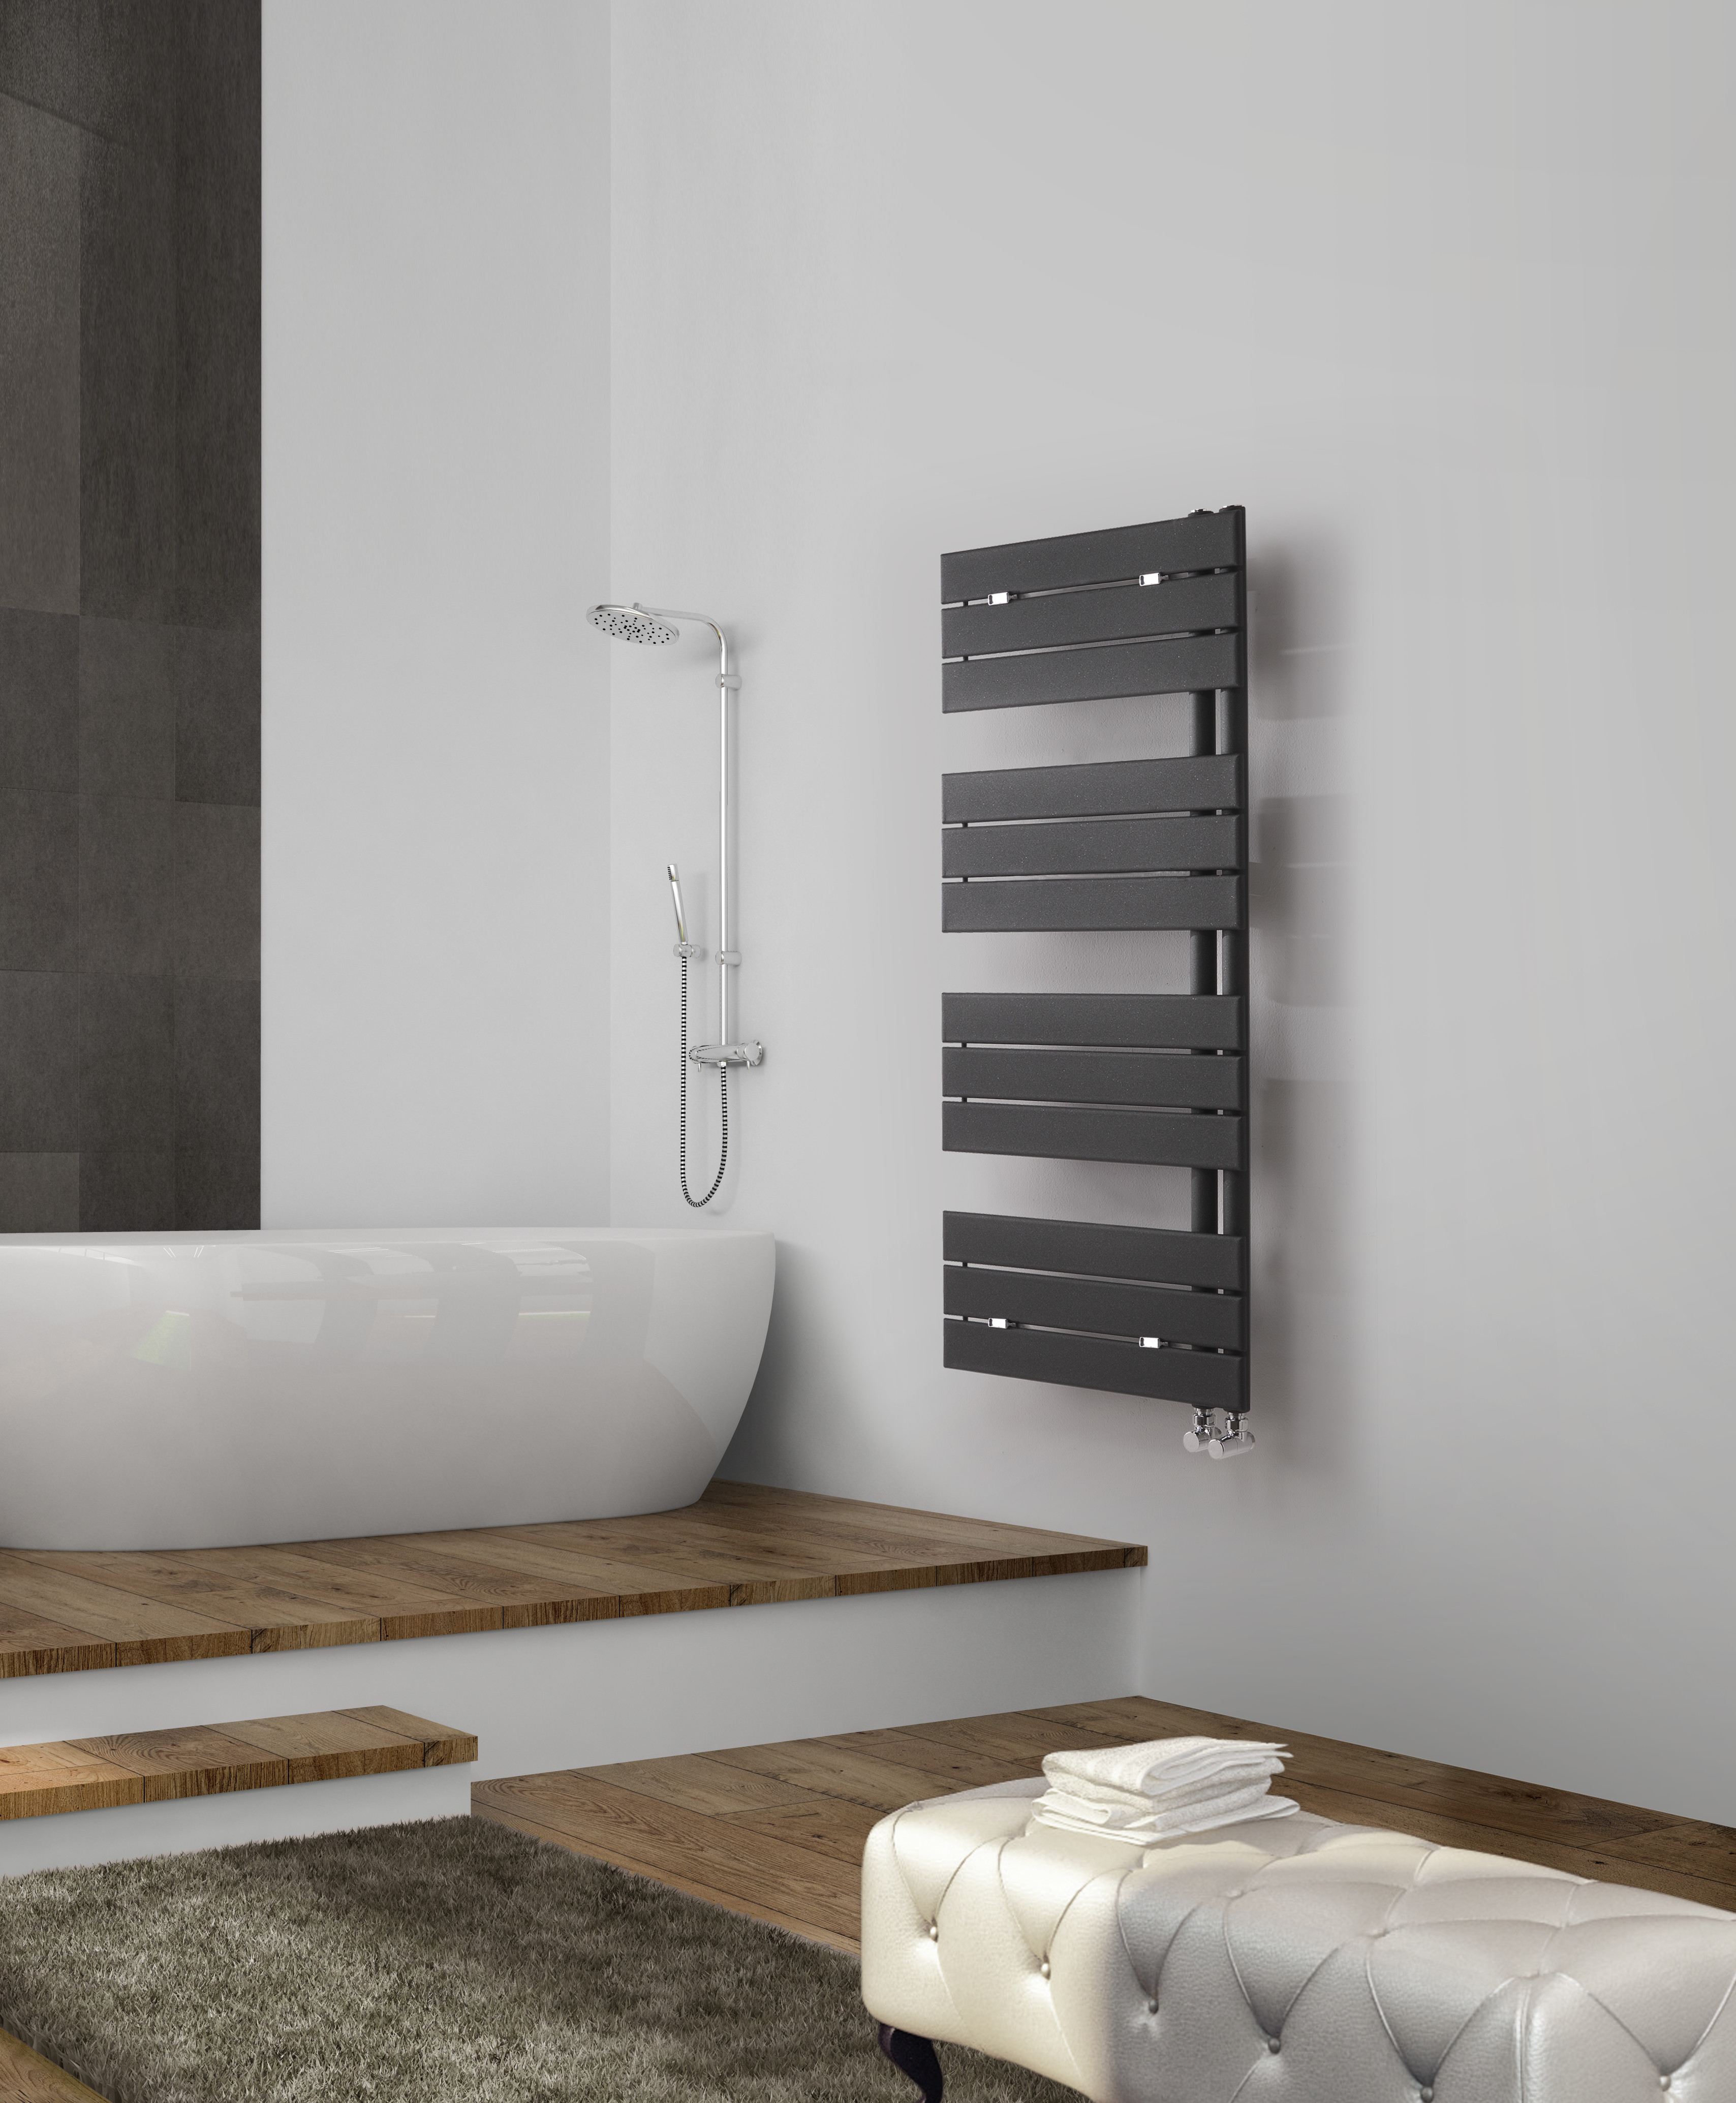 Deltacalor hydraulic heated towel rail